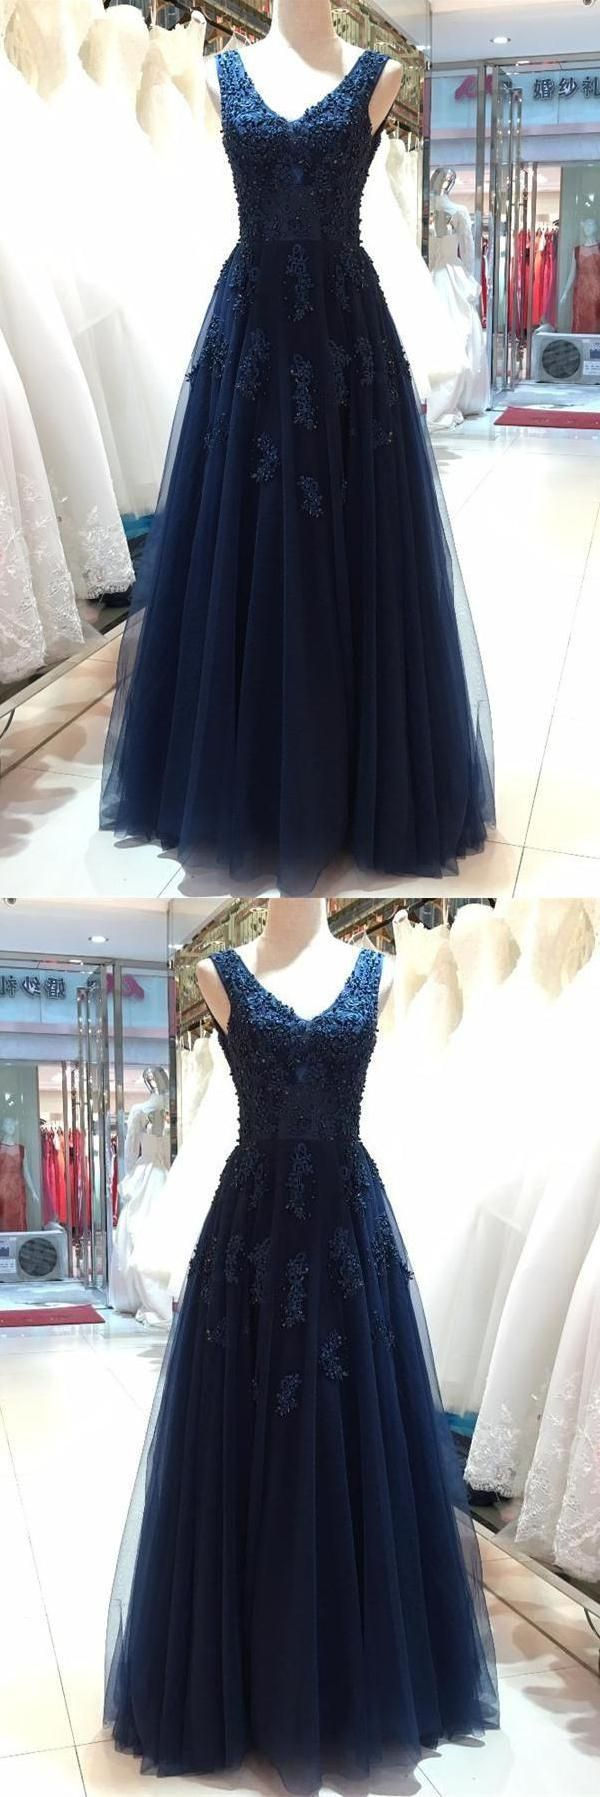 Suitable sleeveless prom dresses navy blue sleeveless prom dresses